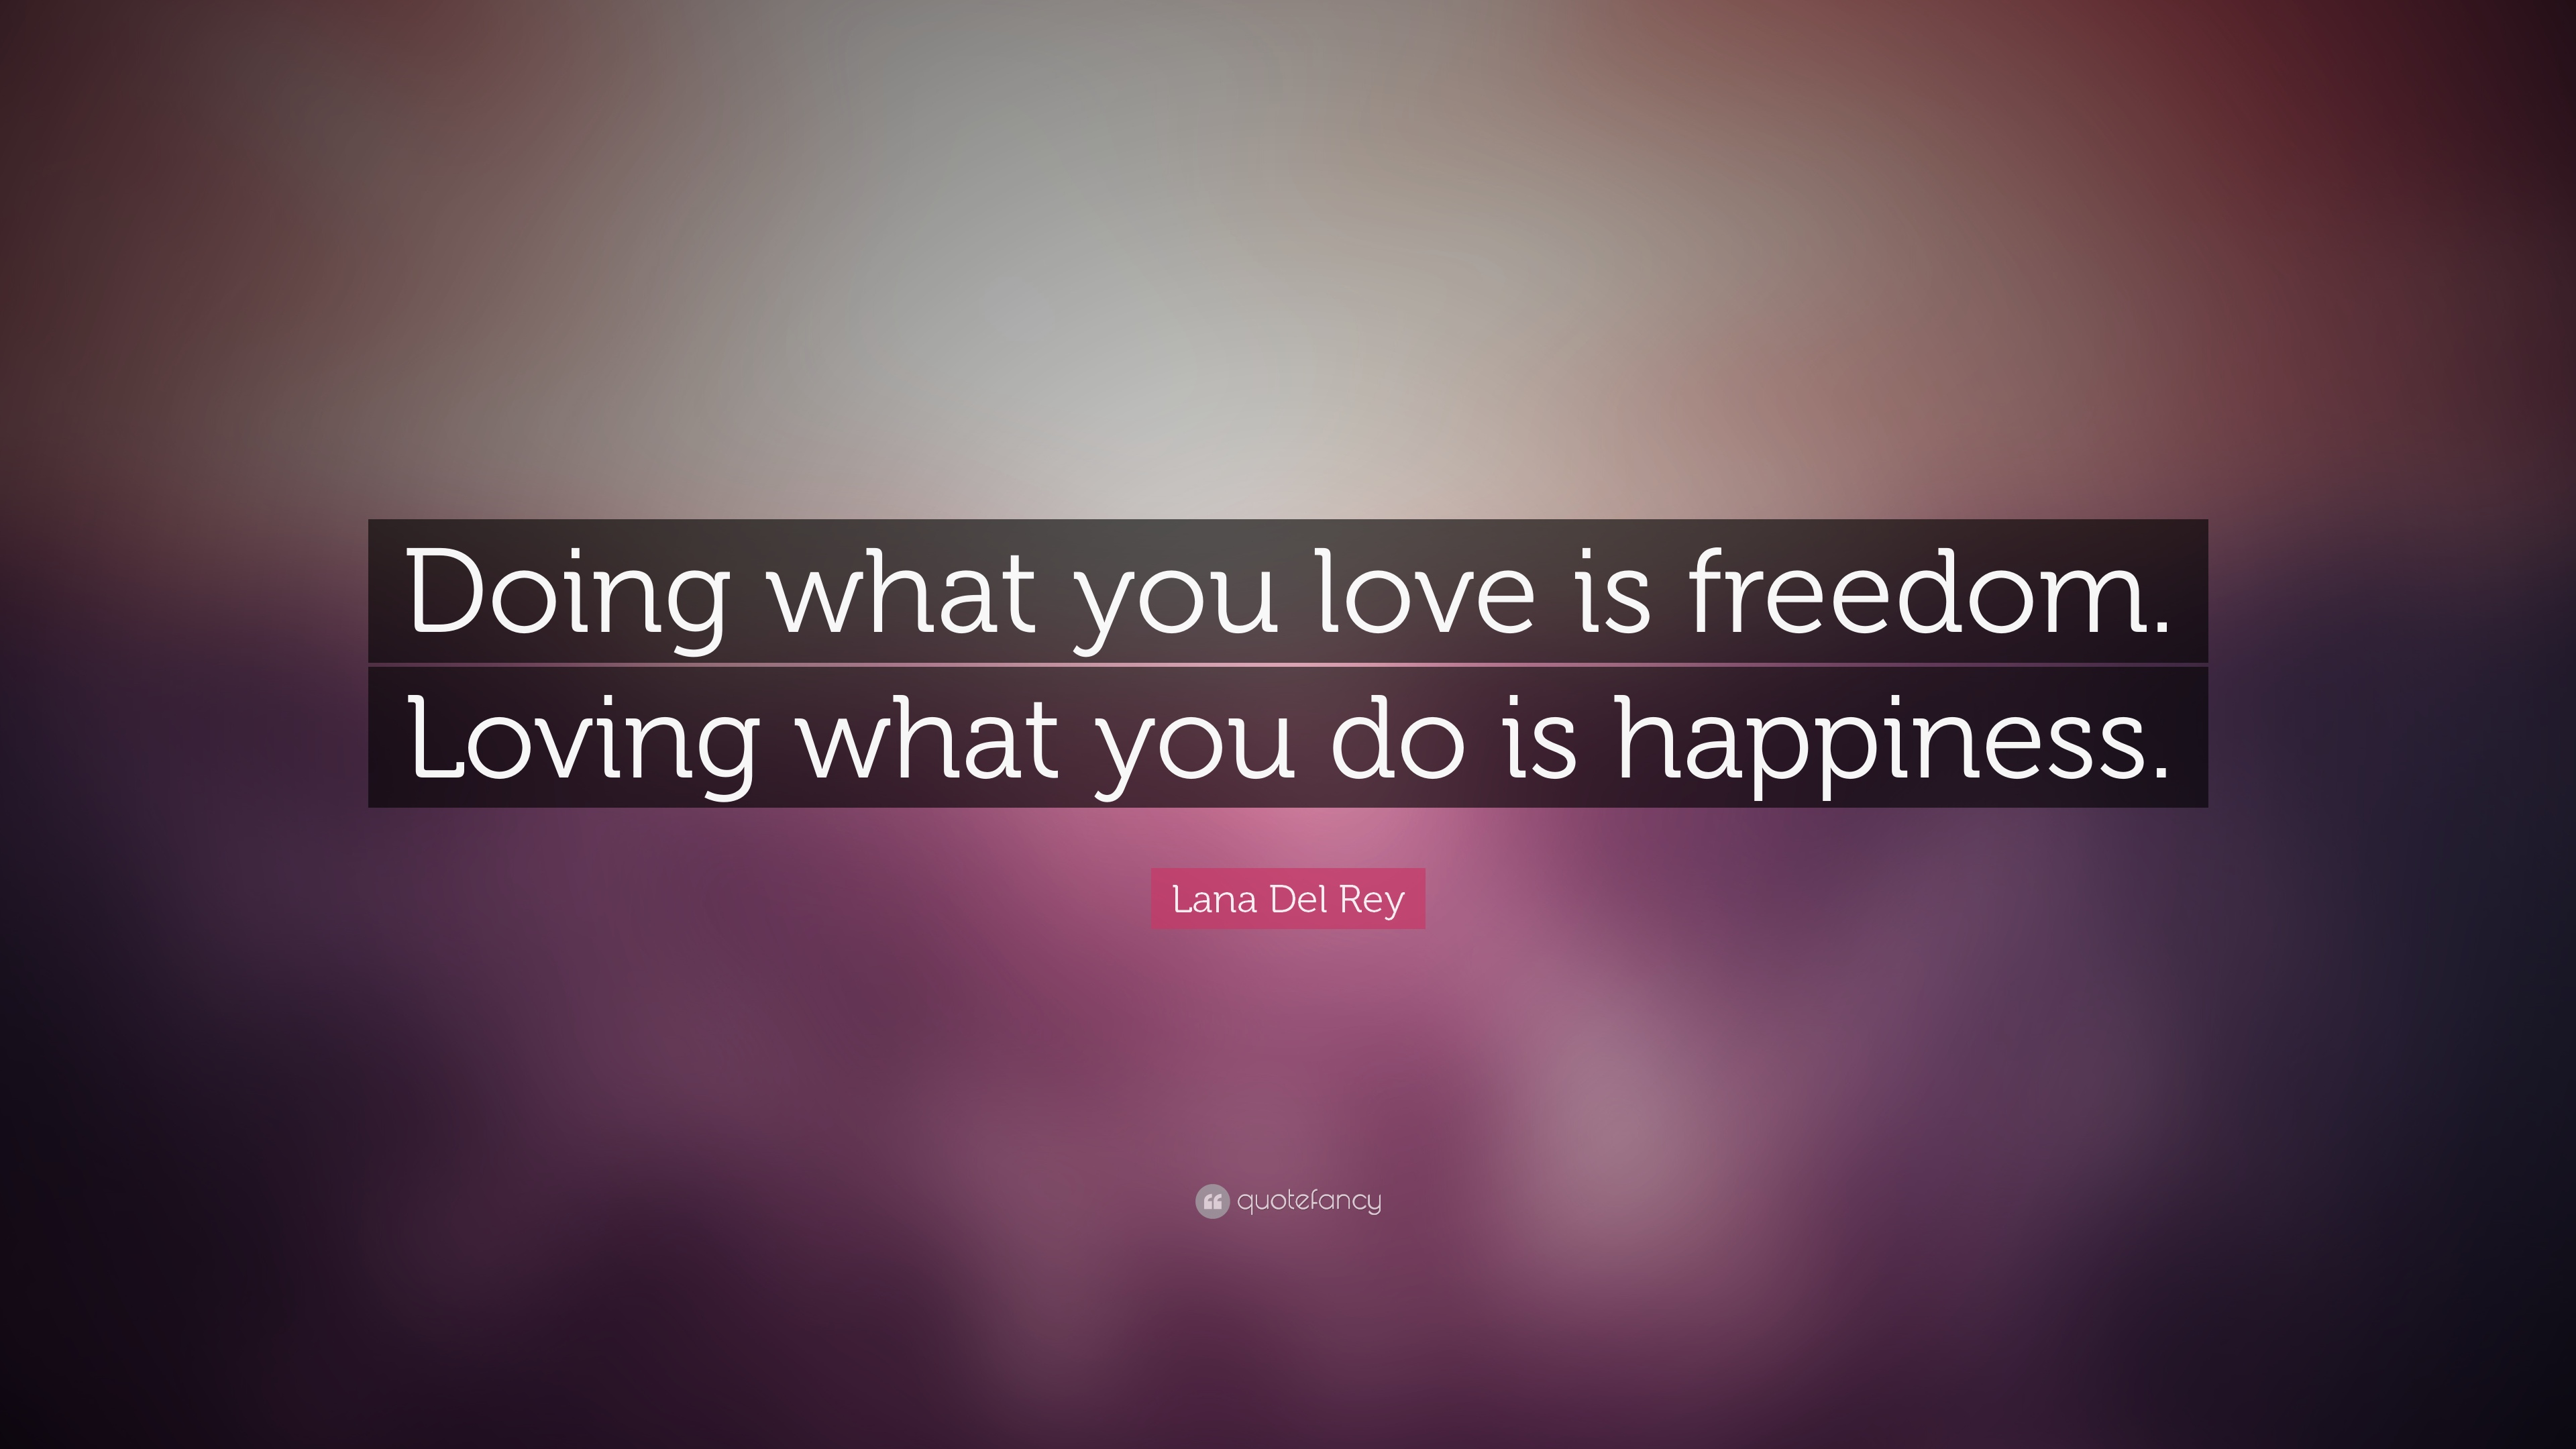 Quotes About Love What You Do : Doing what you love is freedom. Loving what you do is happiness ...